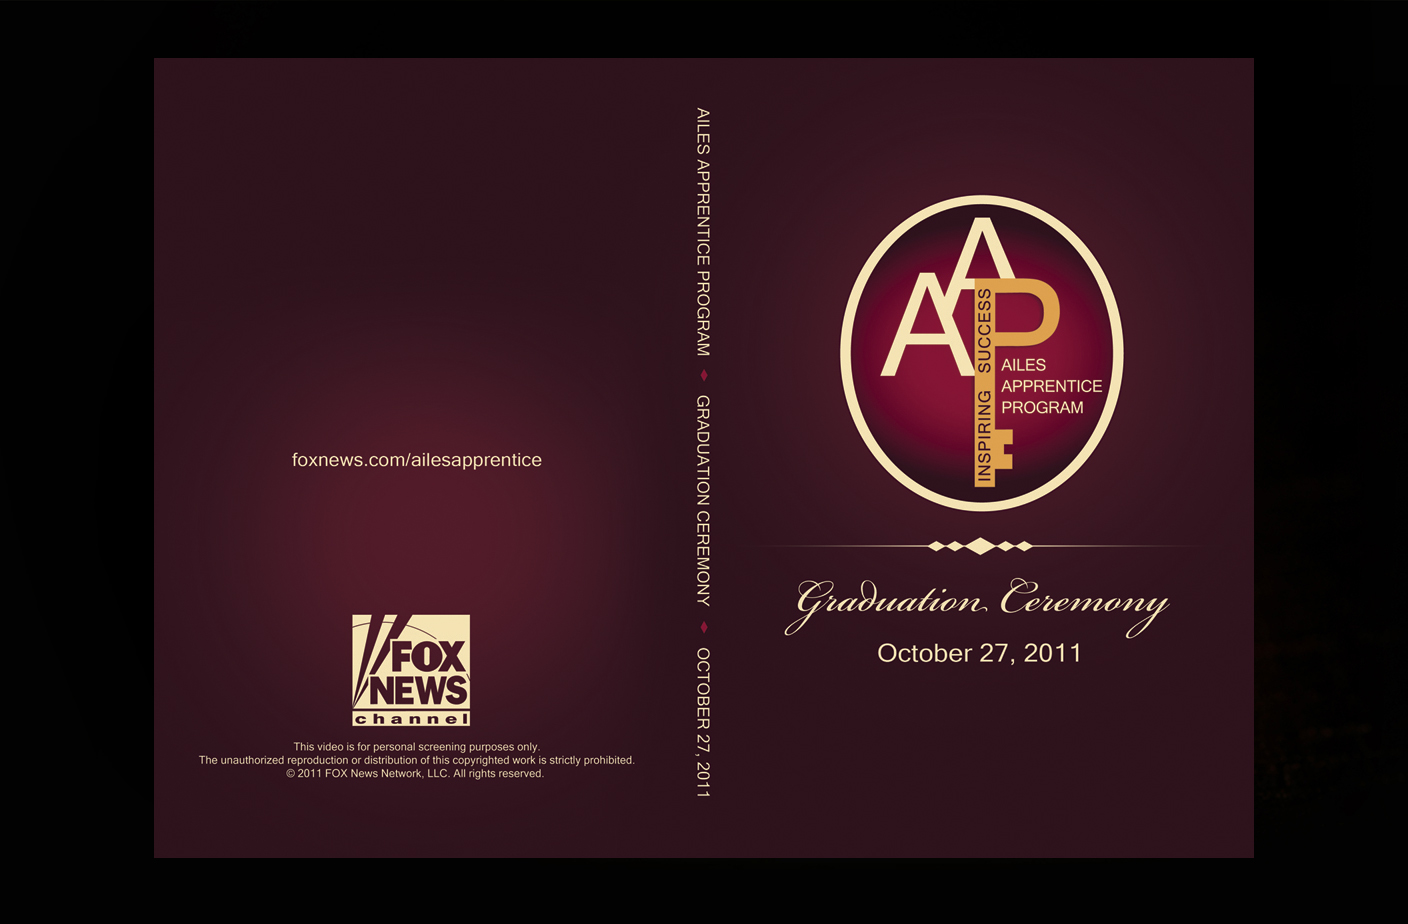 DVD Wrap Design - Ailes Apprentice Program. Fox News Channel 2011.